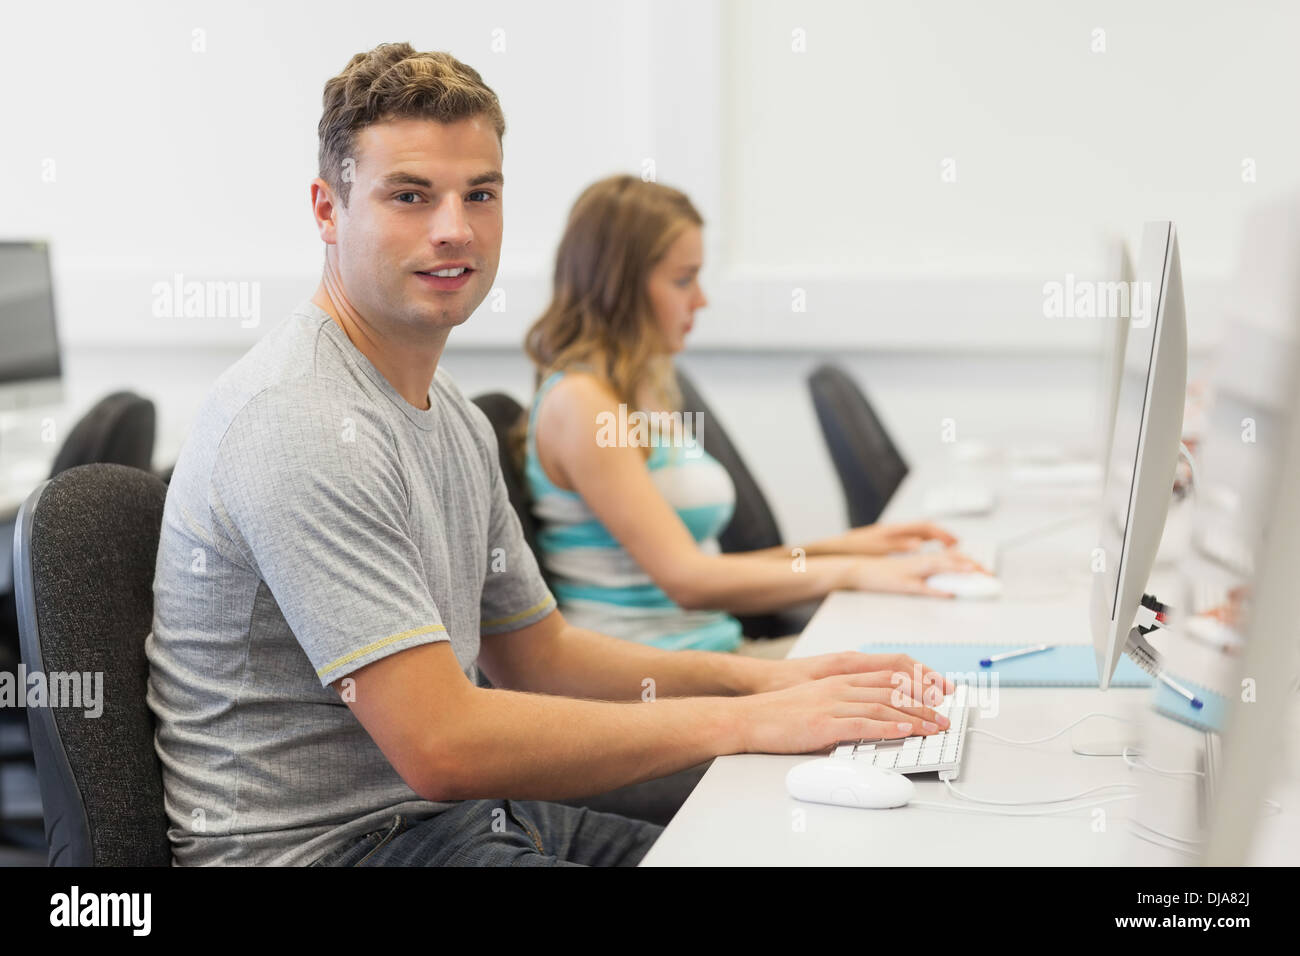 Two happy students working on computer individually - Stock Image